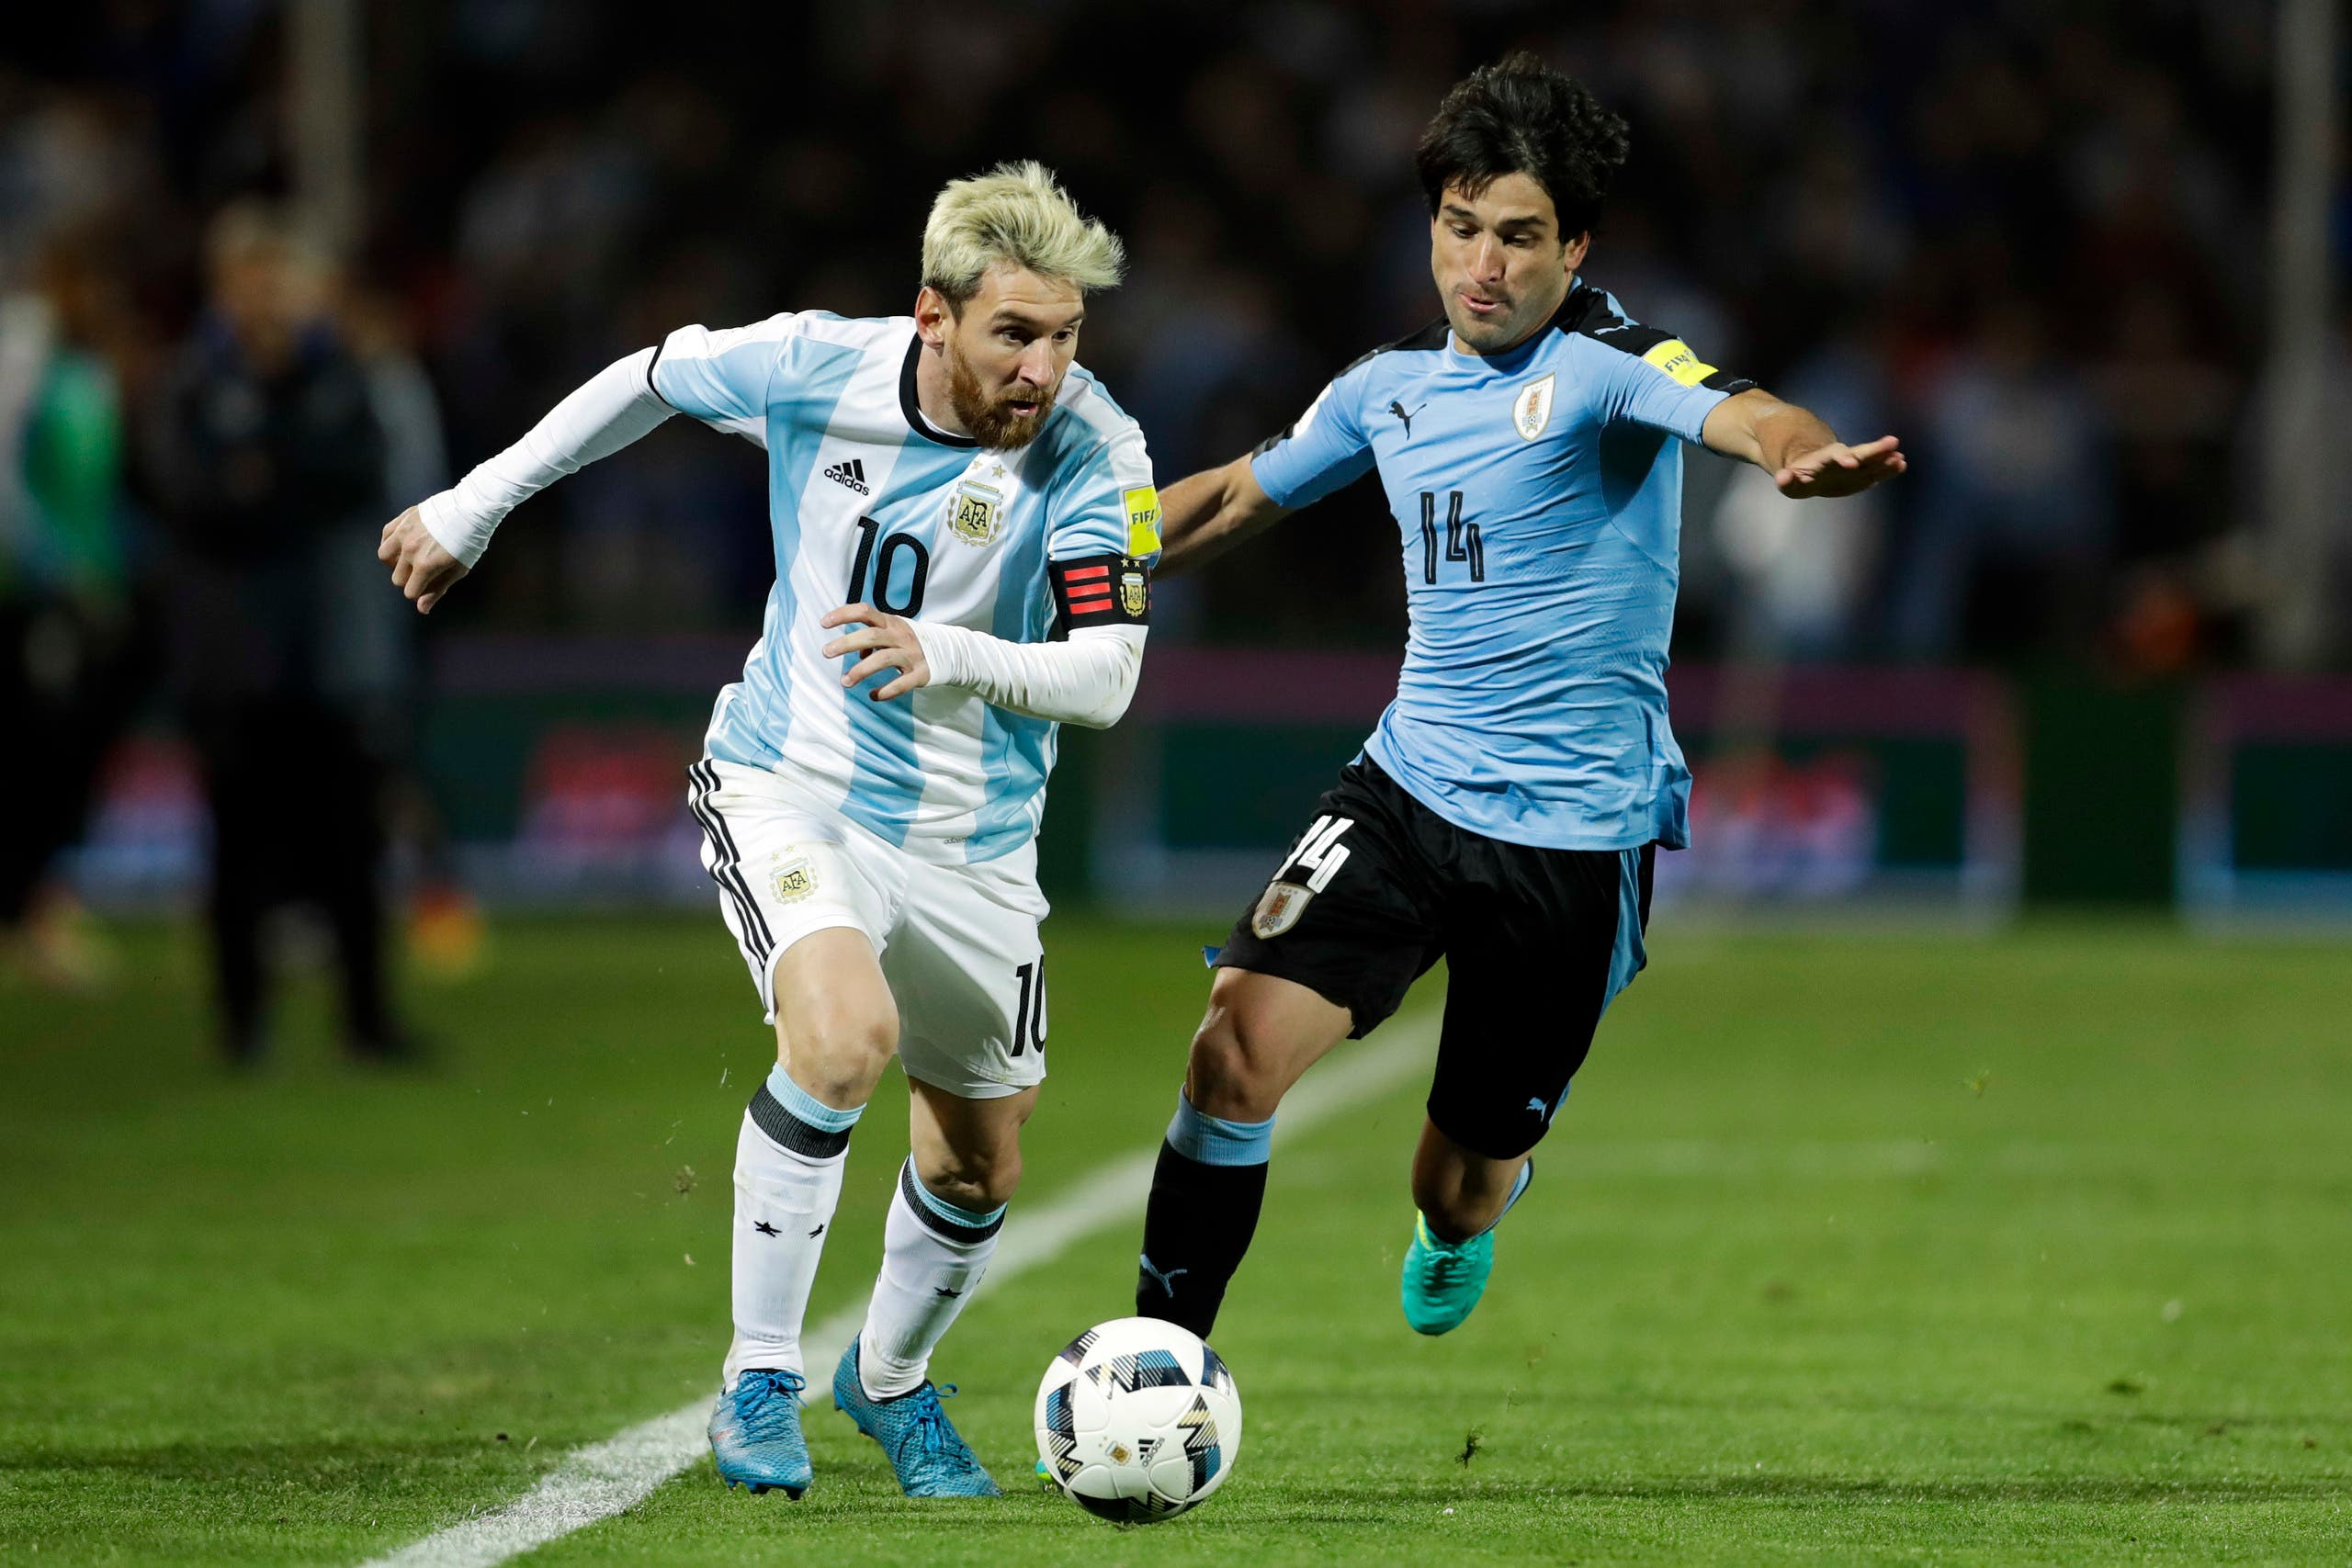 Argentina's Lionel Messi, left, vies for the ball with Uruguay's Nicolas Lodeiro during a 2018 World Cup qualifying soccer match in Mendoza, Argentina, Thursday, Sept. 1, 2016. (AP)